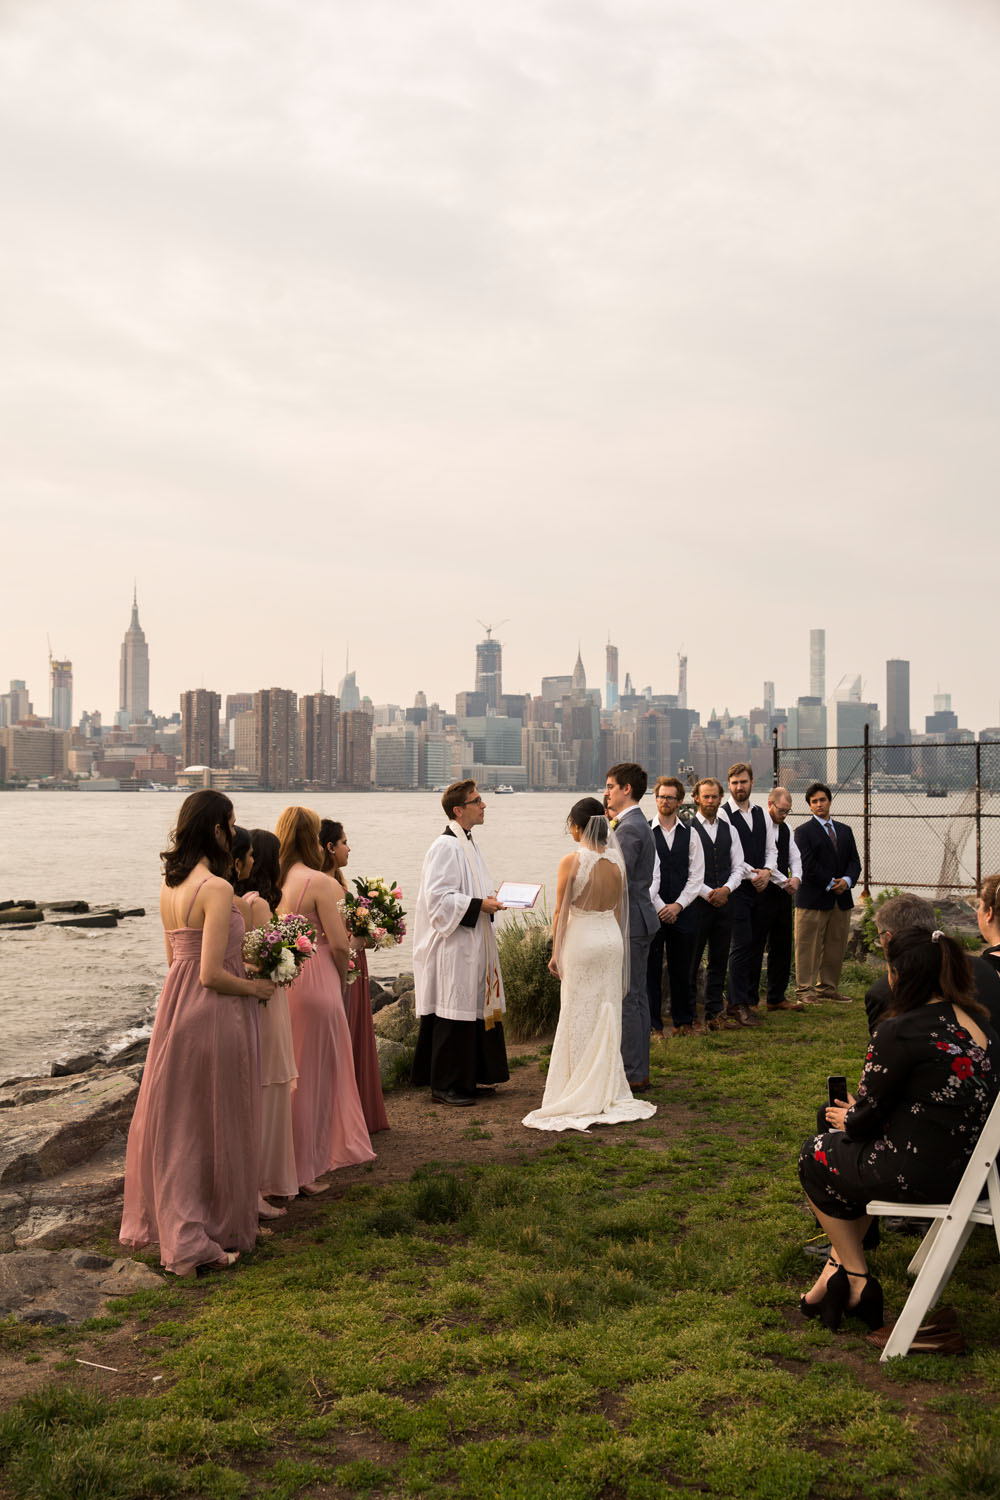 williamsburg_bat_haus_wedding_photographer_bushwick_18.jpg